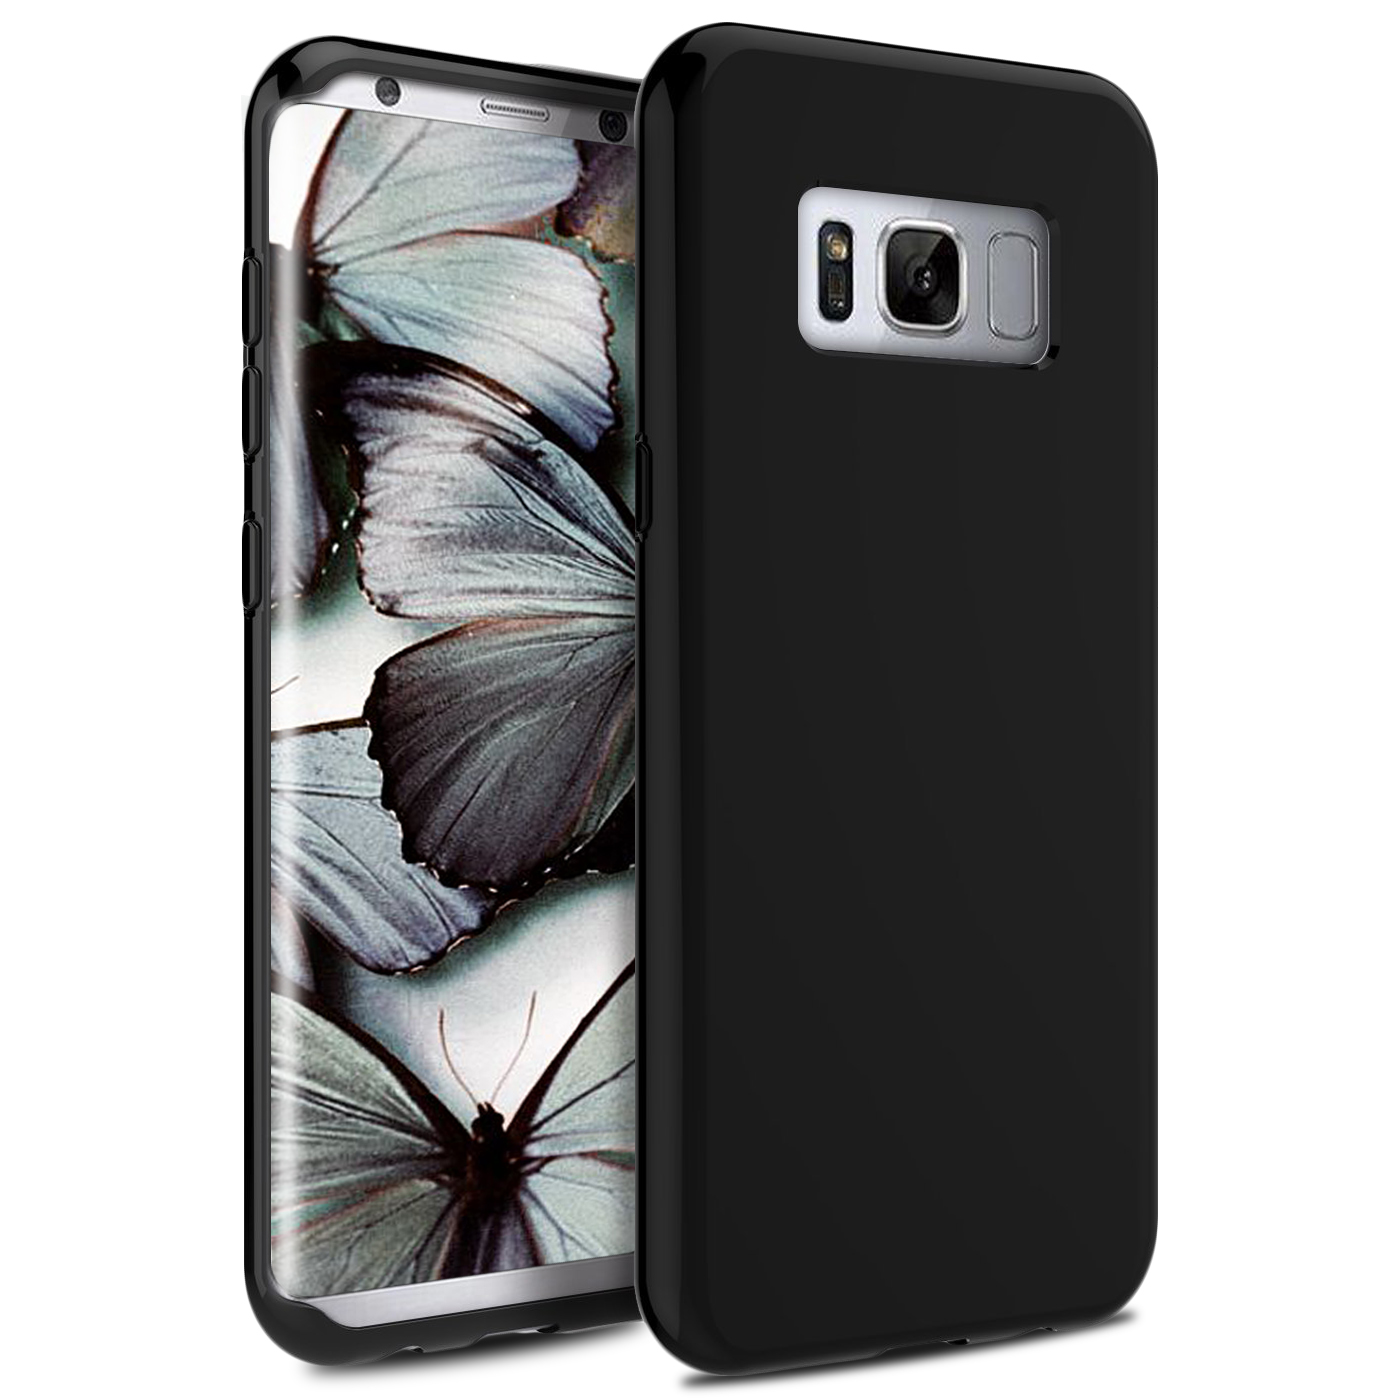 Samsung Galaxy S8 / S8 Plus Case, Zizo TPU Cover - Simple Thin Heavy Duty Case